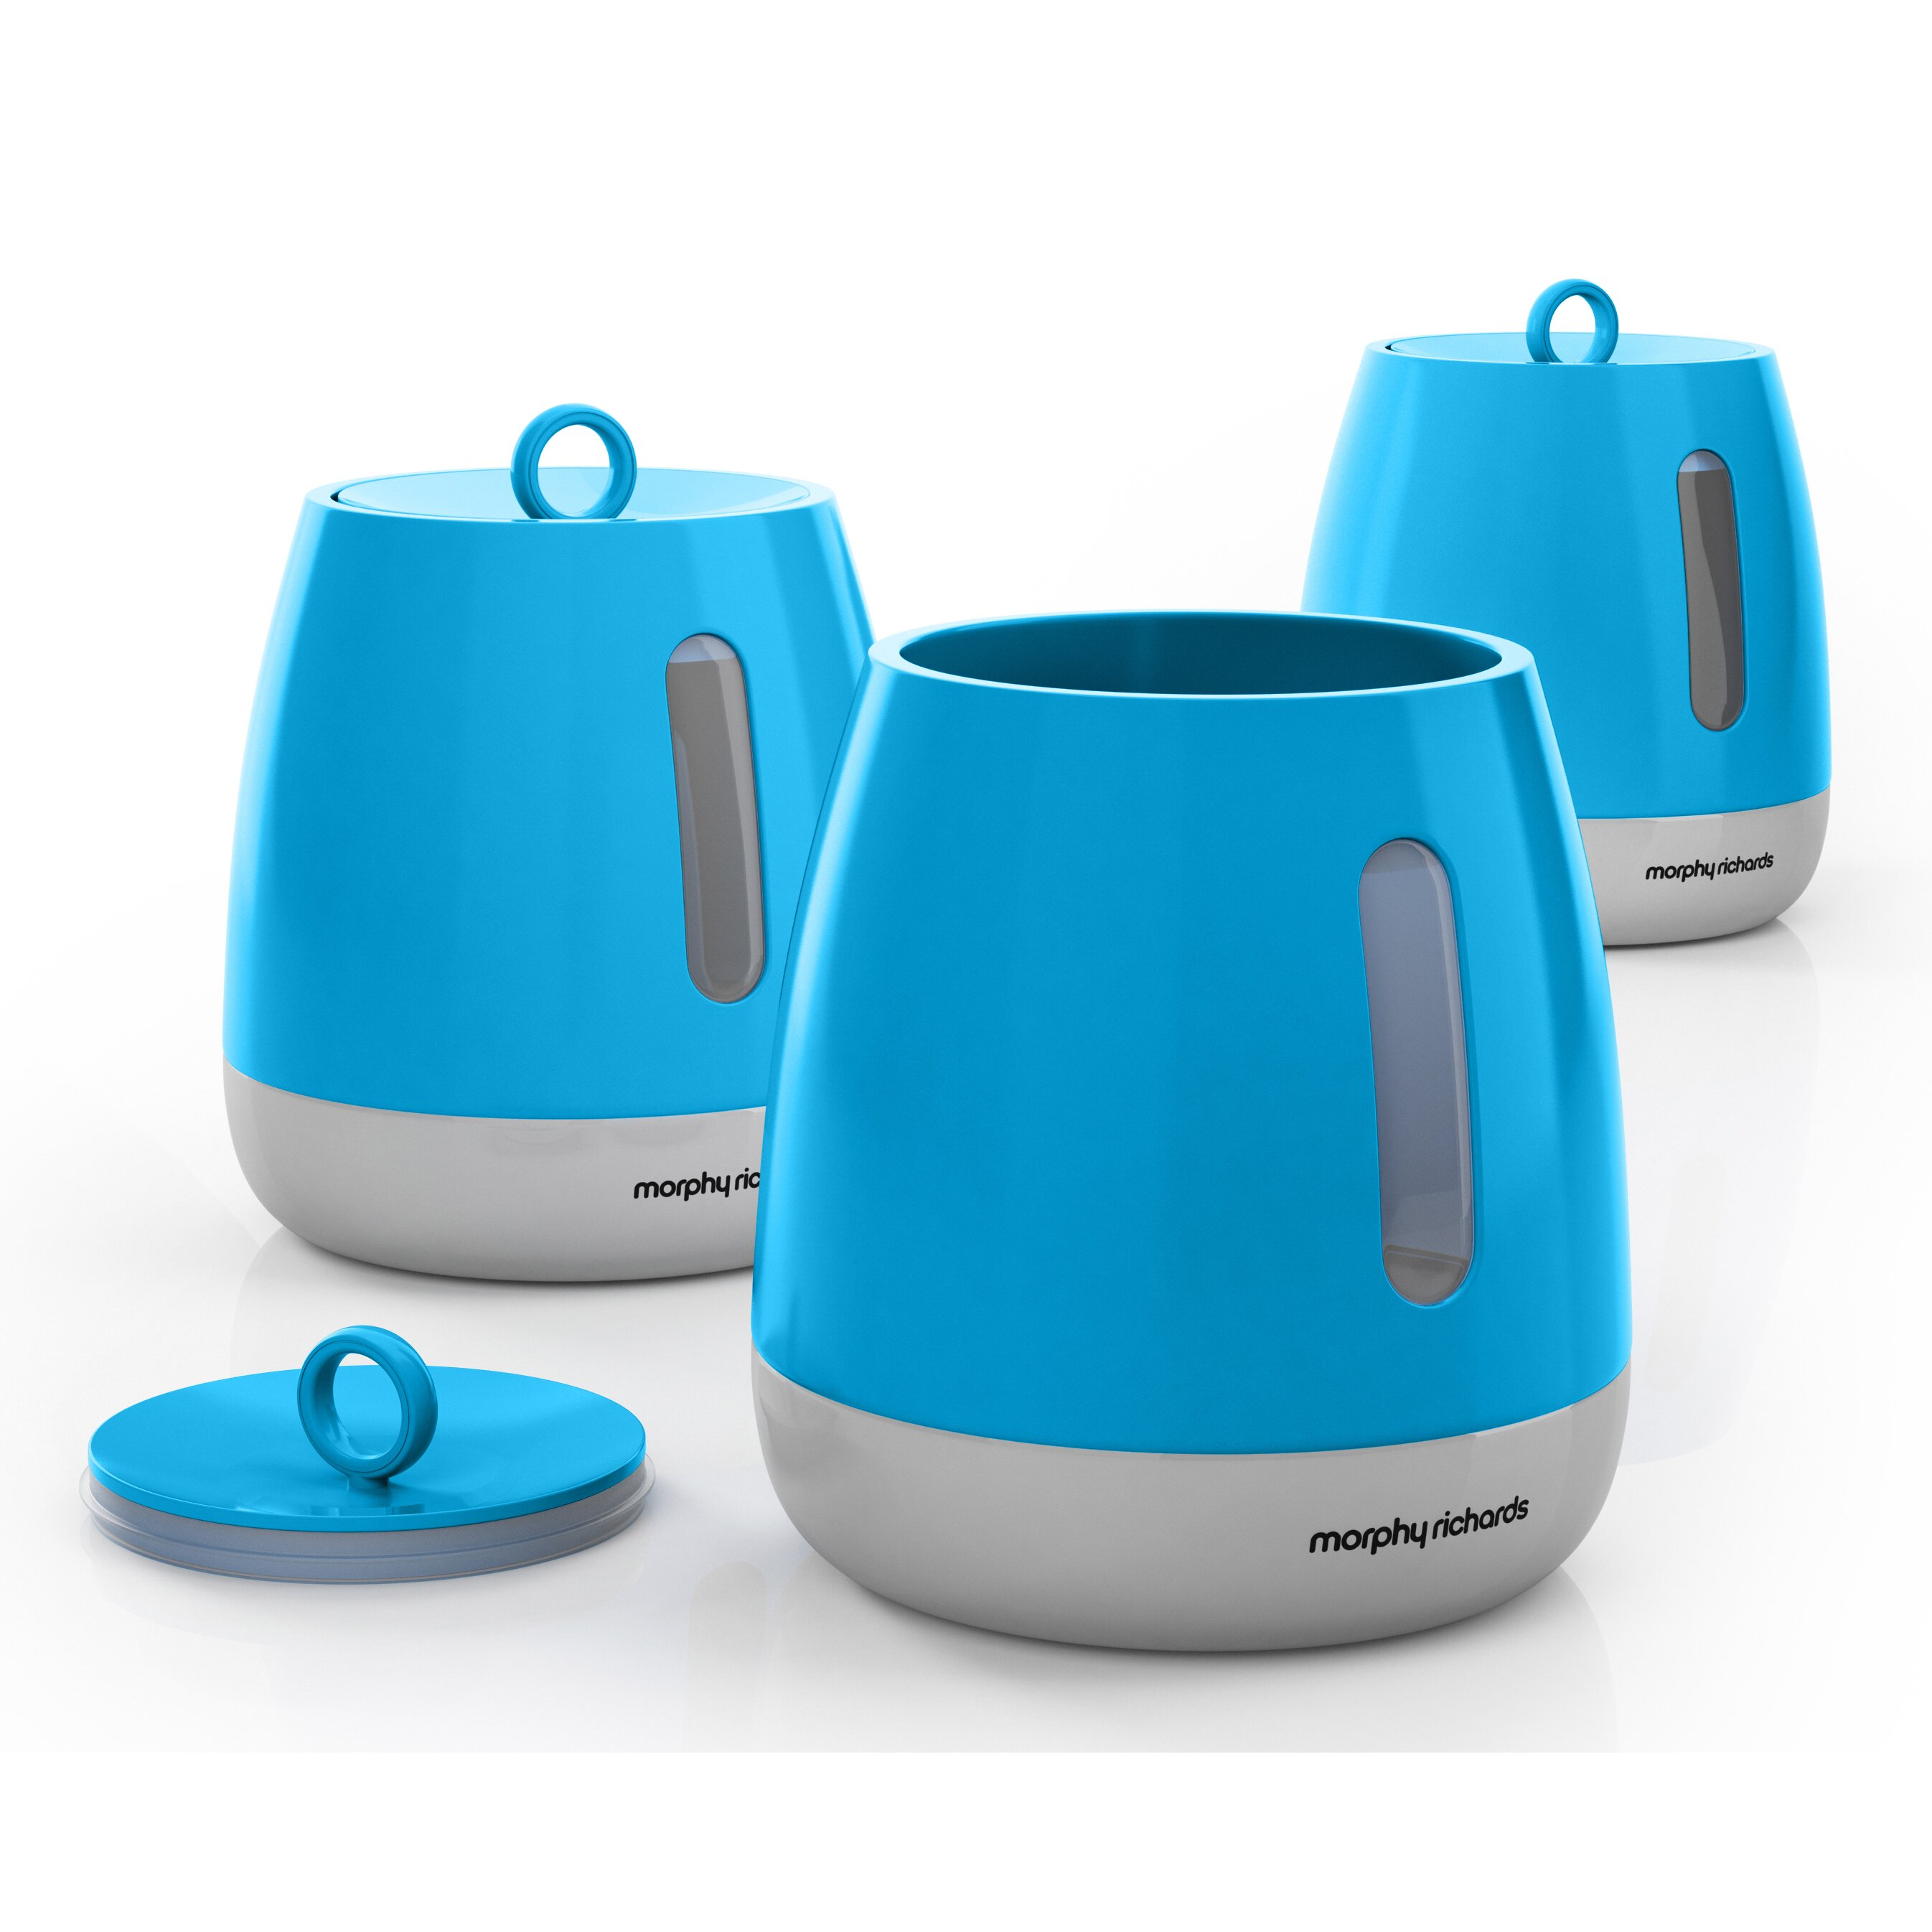 Morphy Richards Kitchen Set: Morphy Richards 3-Piece Storage Canisters Set